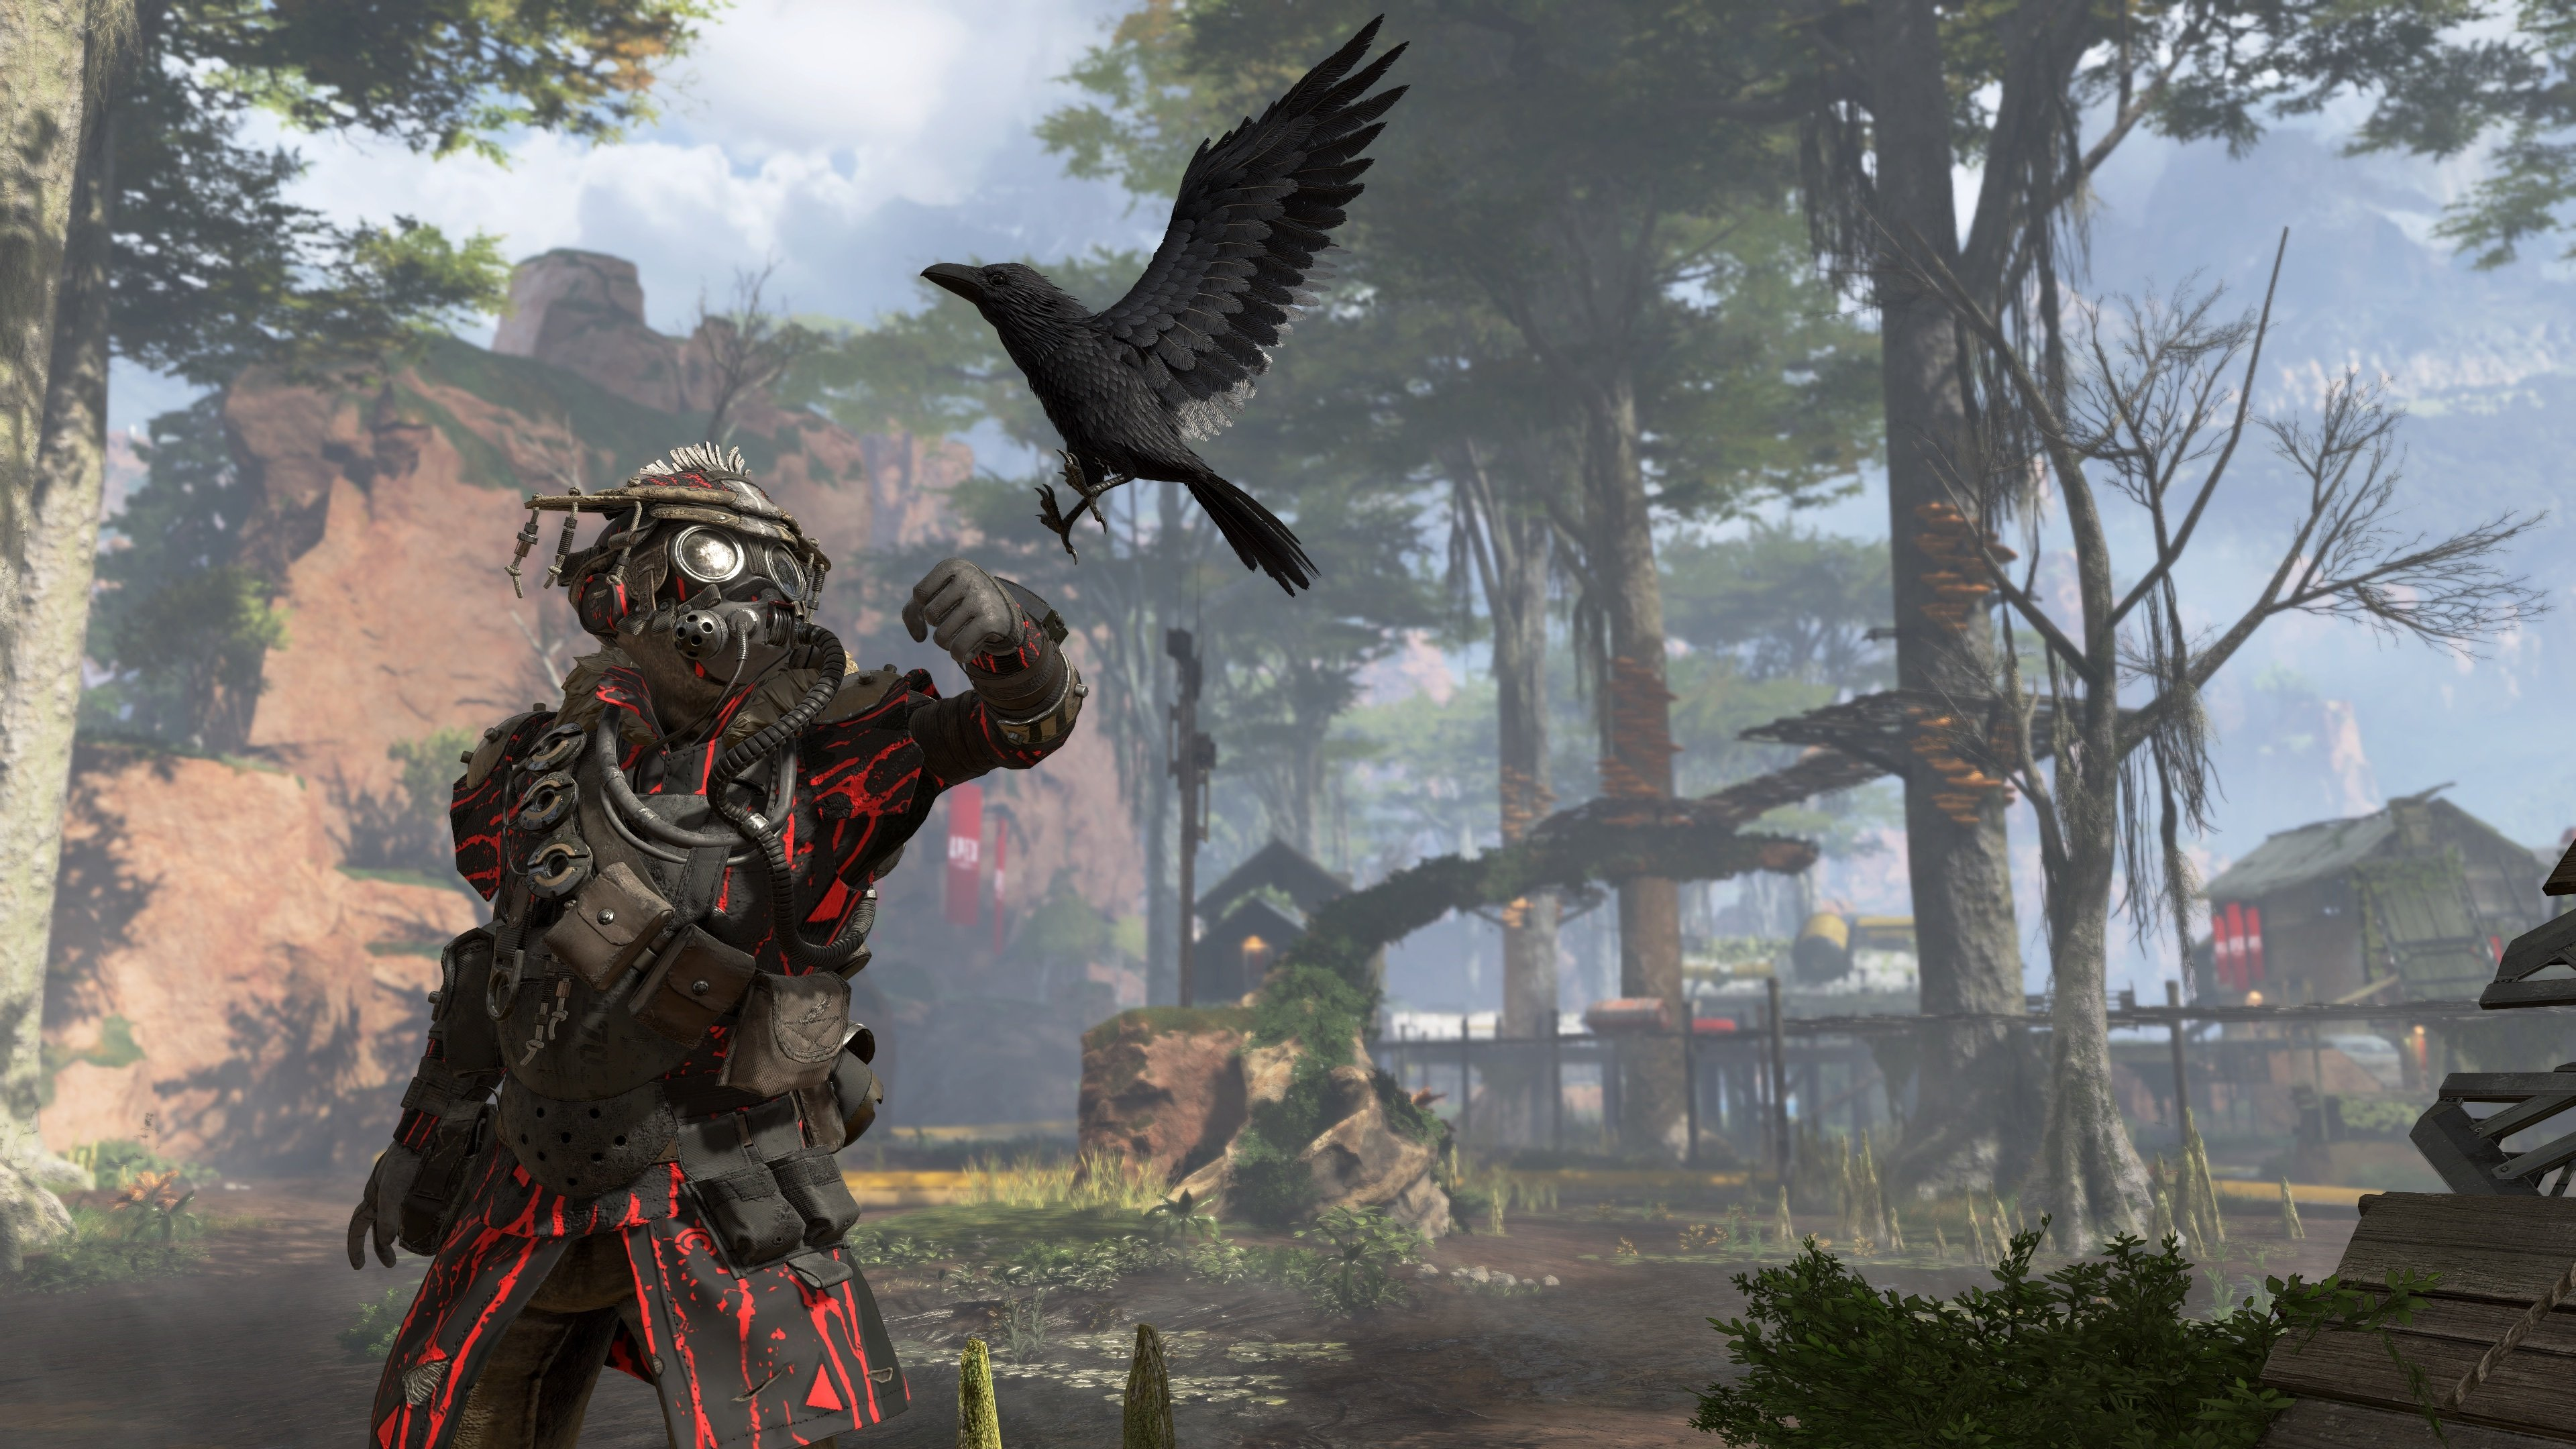 Apex Legends has no single player options available, with the primary game mode being three-man squads.